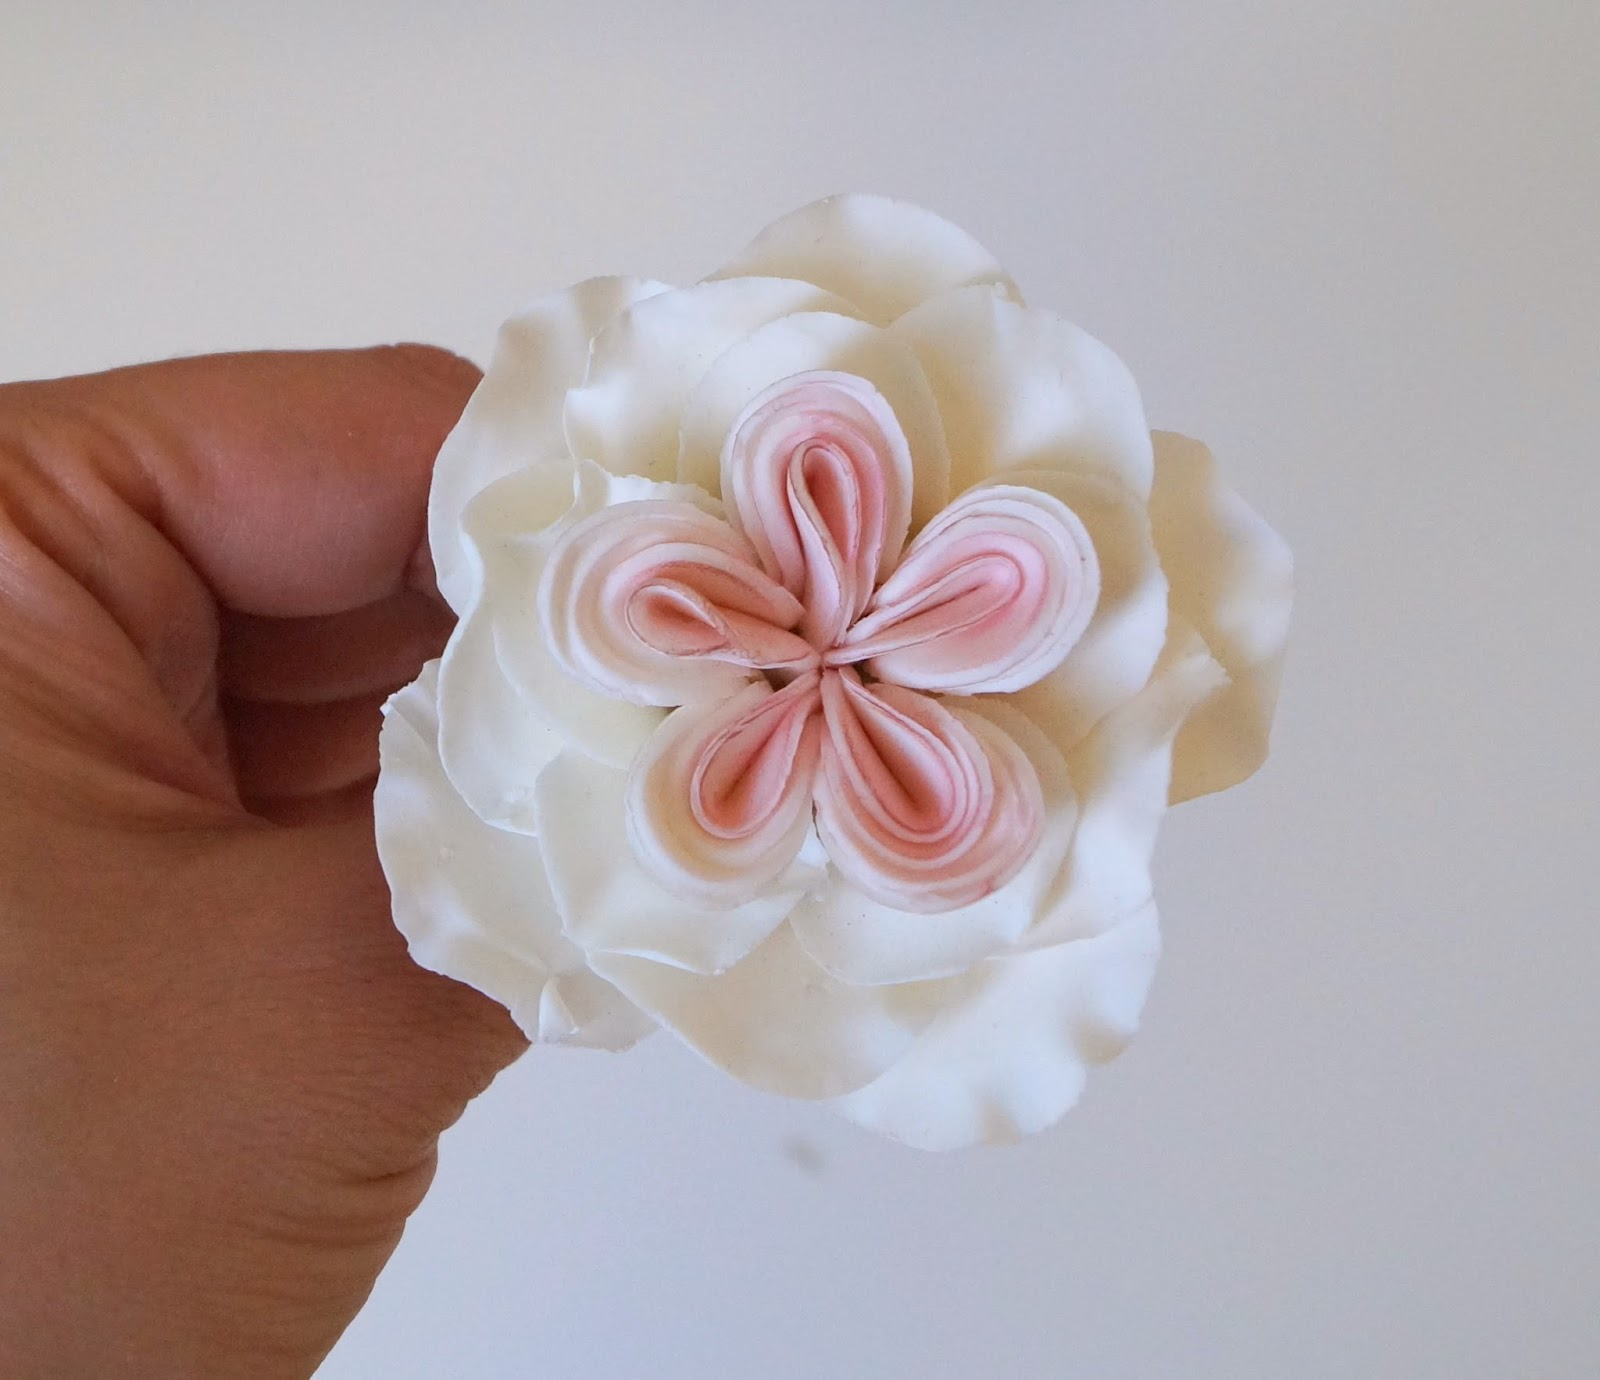 http://sugarellasweetshowto.blogspot.ca/2015/05/how-to-make-cabbage-rose-gumpaste-flower.html